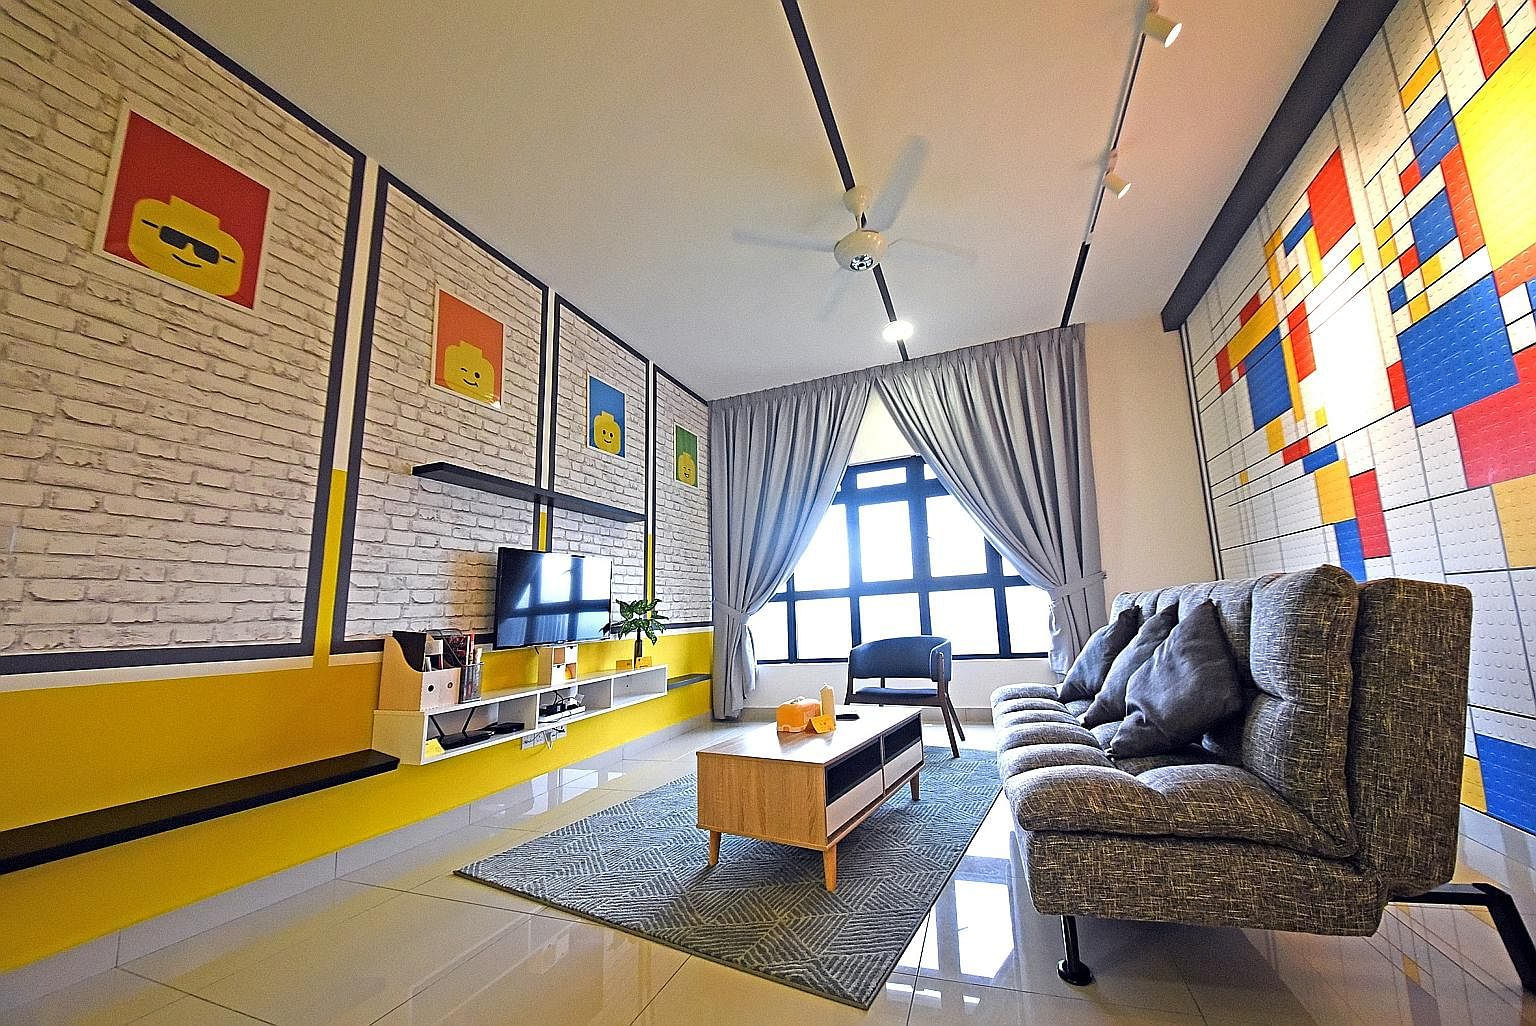 Mr Colin Goh and his wife Jessica Loke turned their condo unit at The Meridin in Medini into a lego-themed apartment for rent as their property was near Legoland. They were pleasantly surprised by the attention it got on social media platforms like I